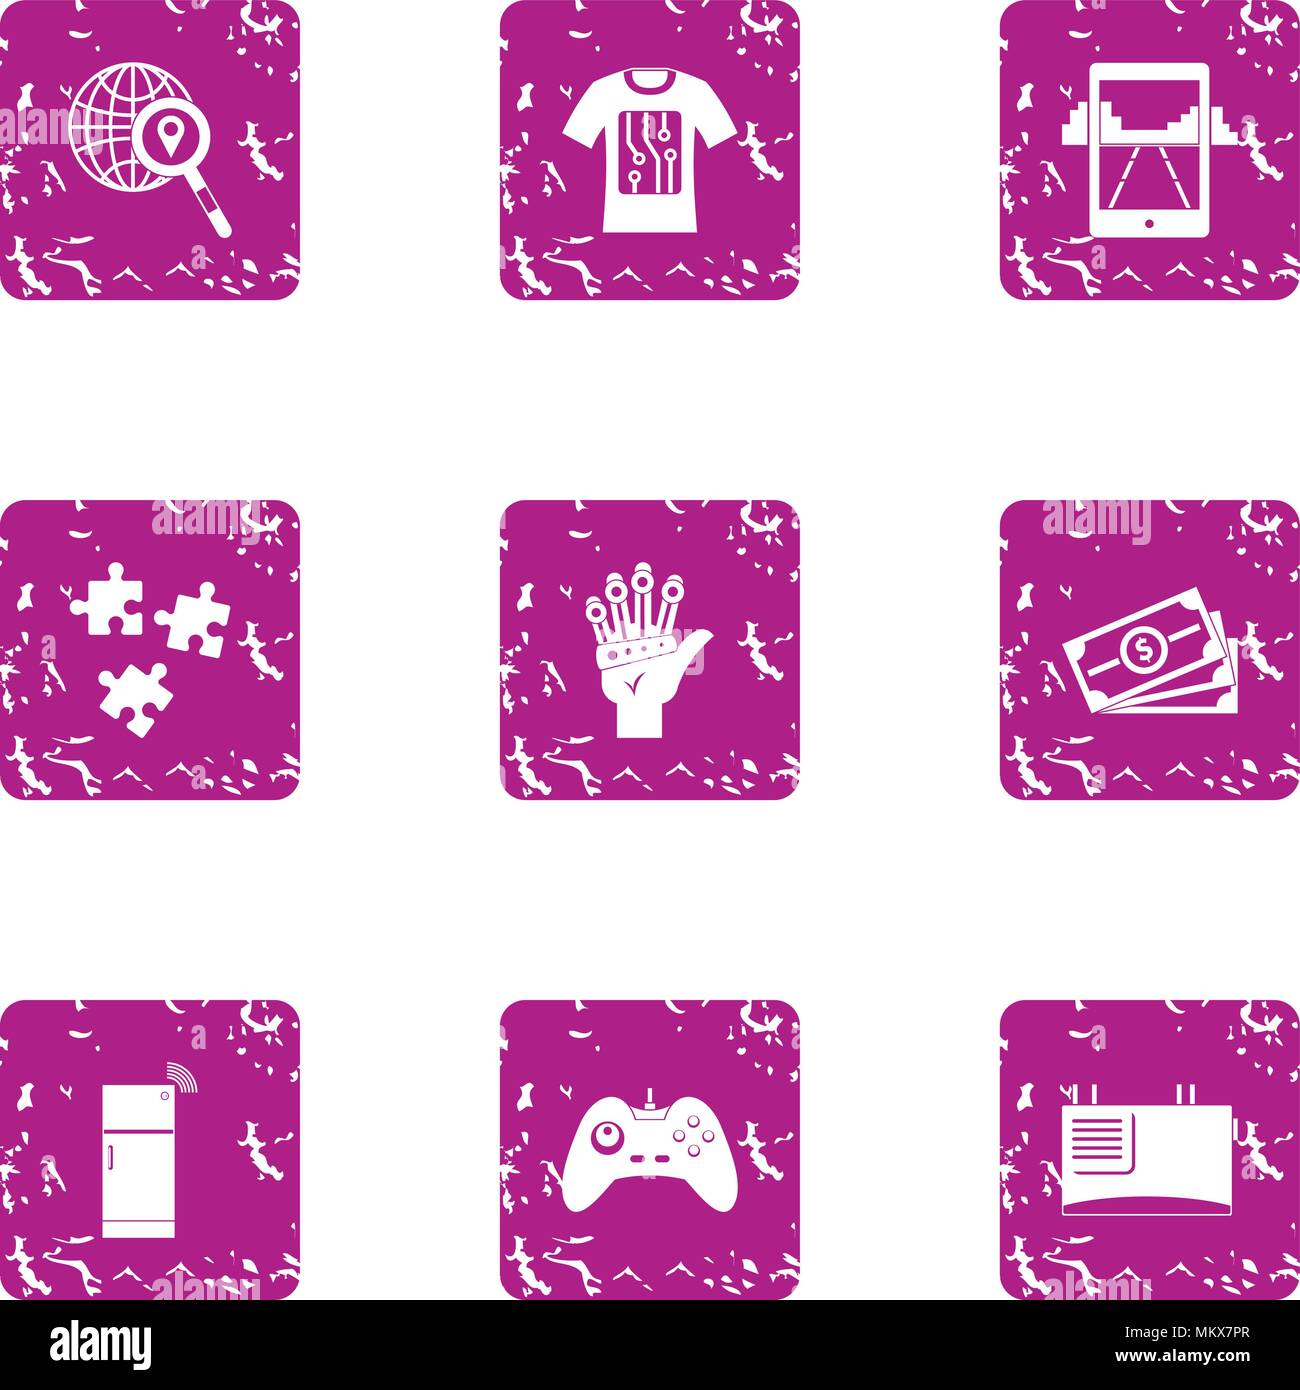 Game convention icons set, grunge style - Stock Image